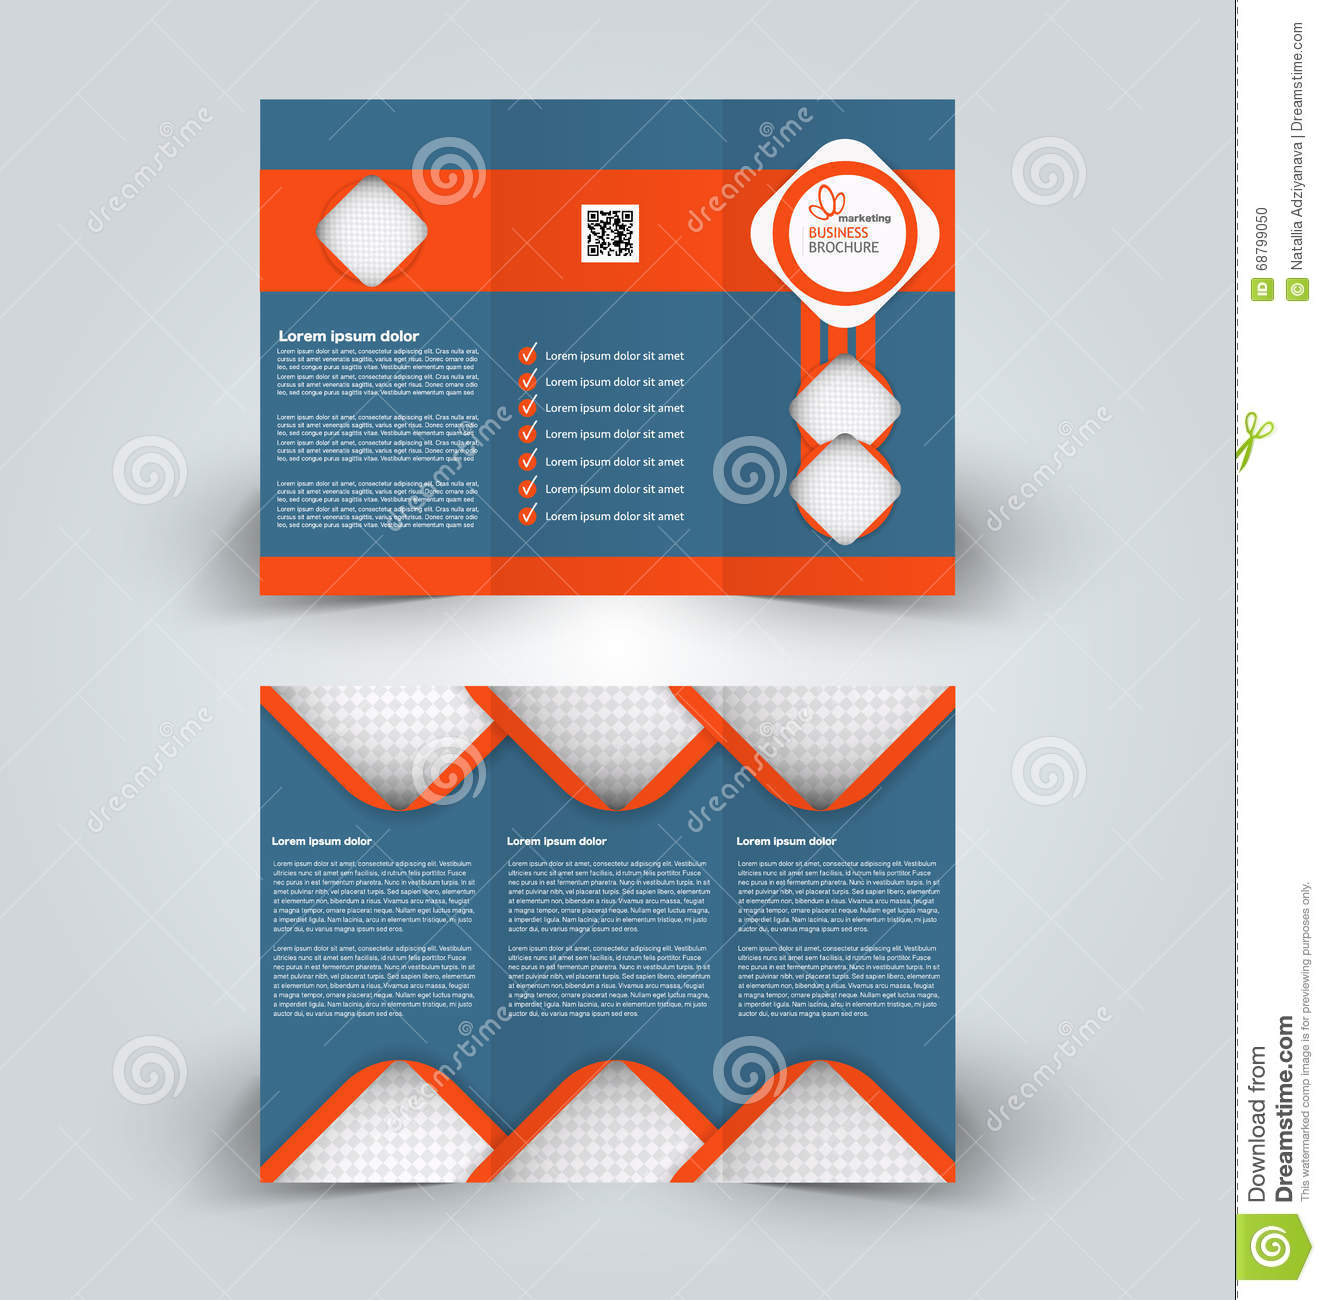 C En A Vesten Brochure Mock Up Design Template For Business Education